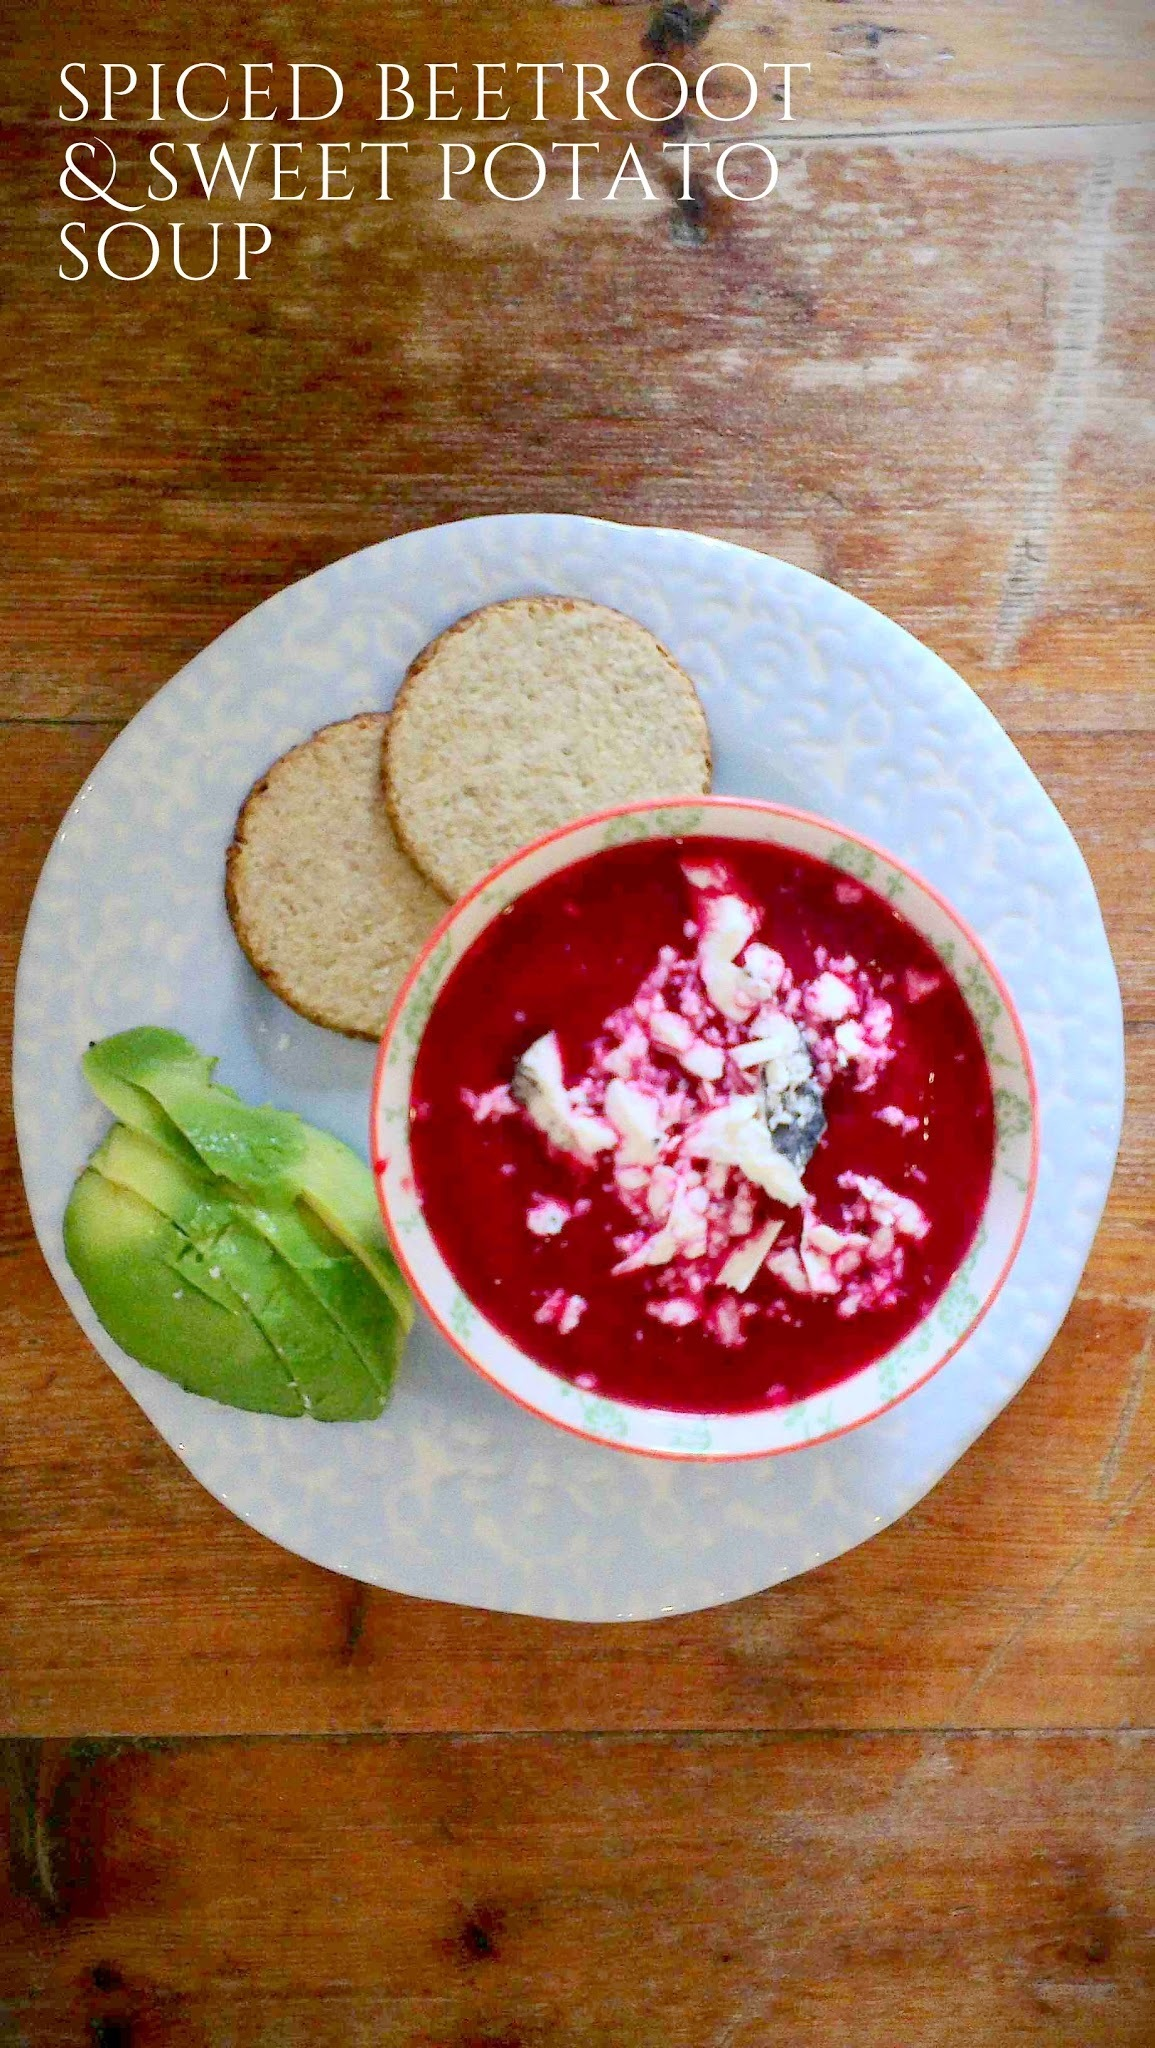 Spiced beetroot and sweet potato soup